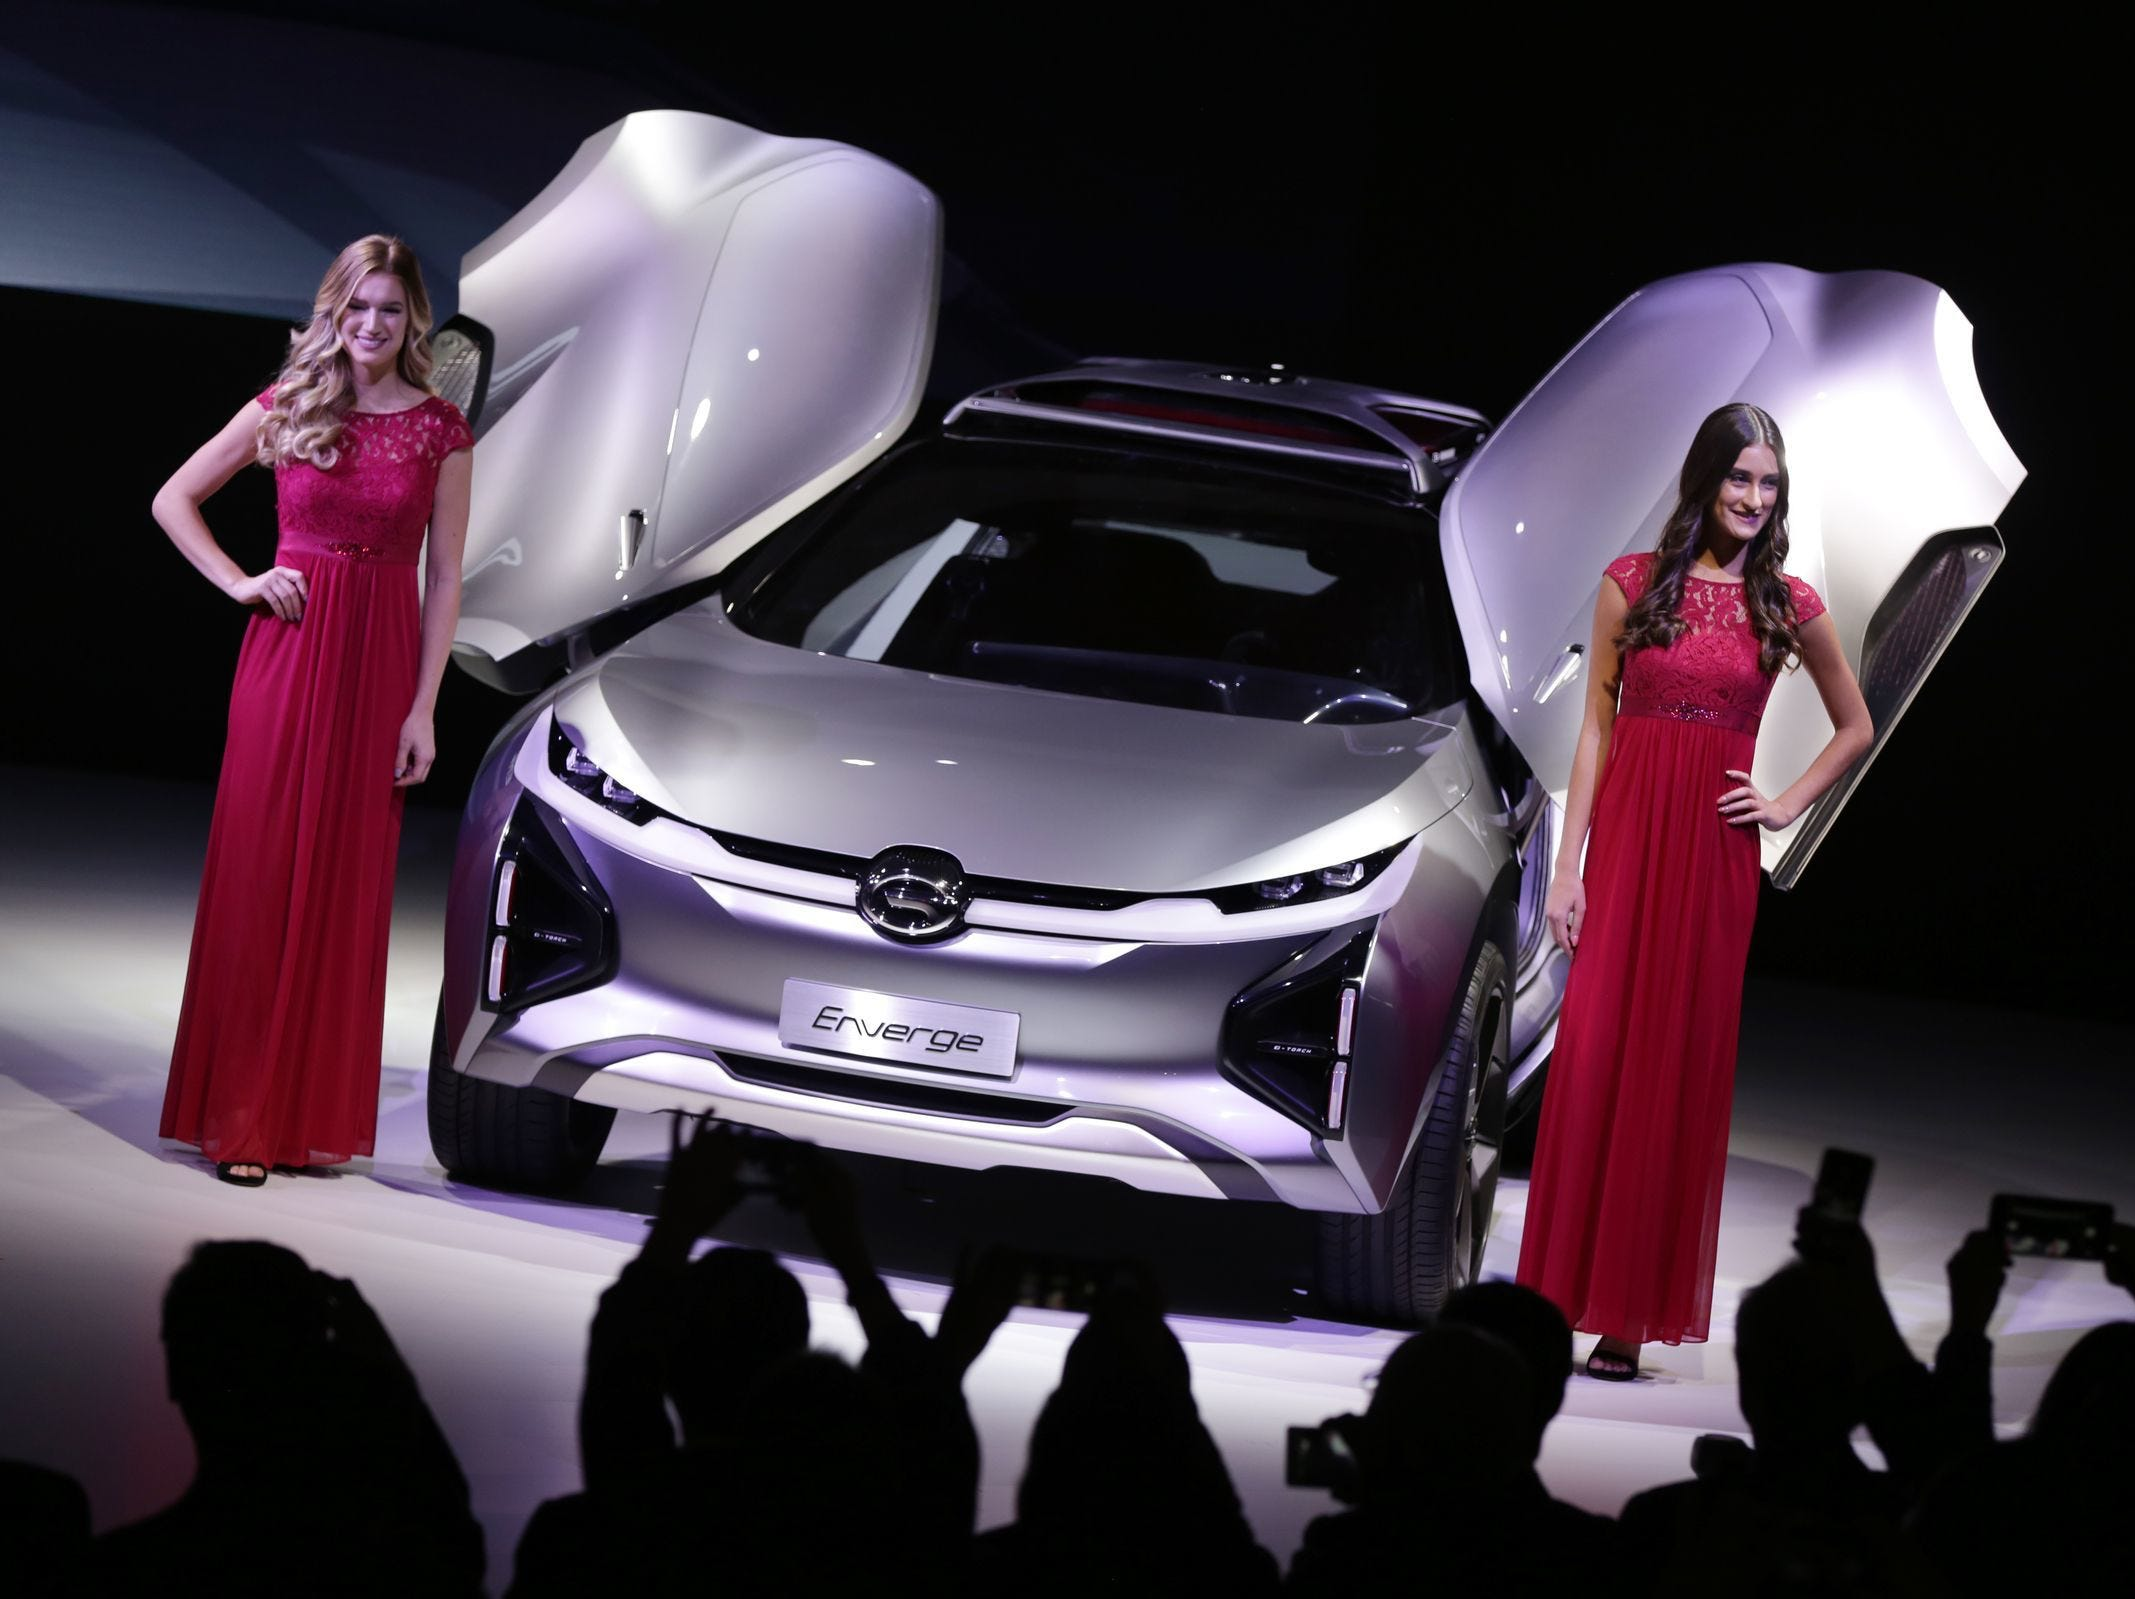 GAC Motor unveils the Enverge concept car during the North American International Auto Show at Cobo Center in Detroit on Monday, January 14, 2018.